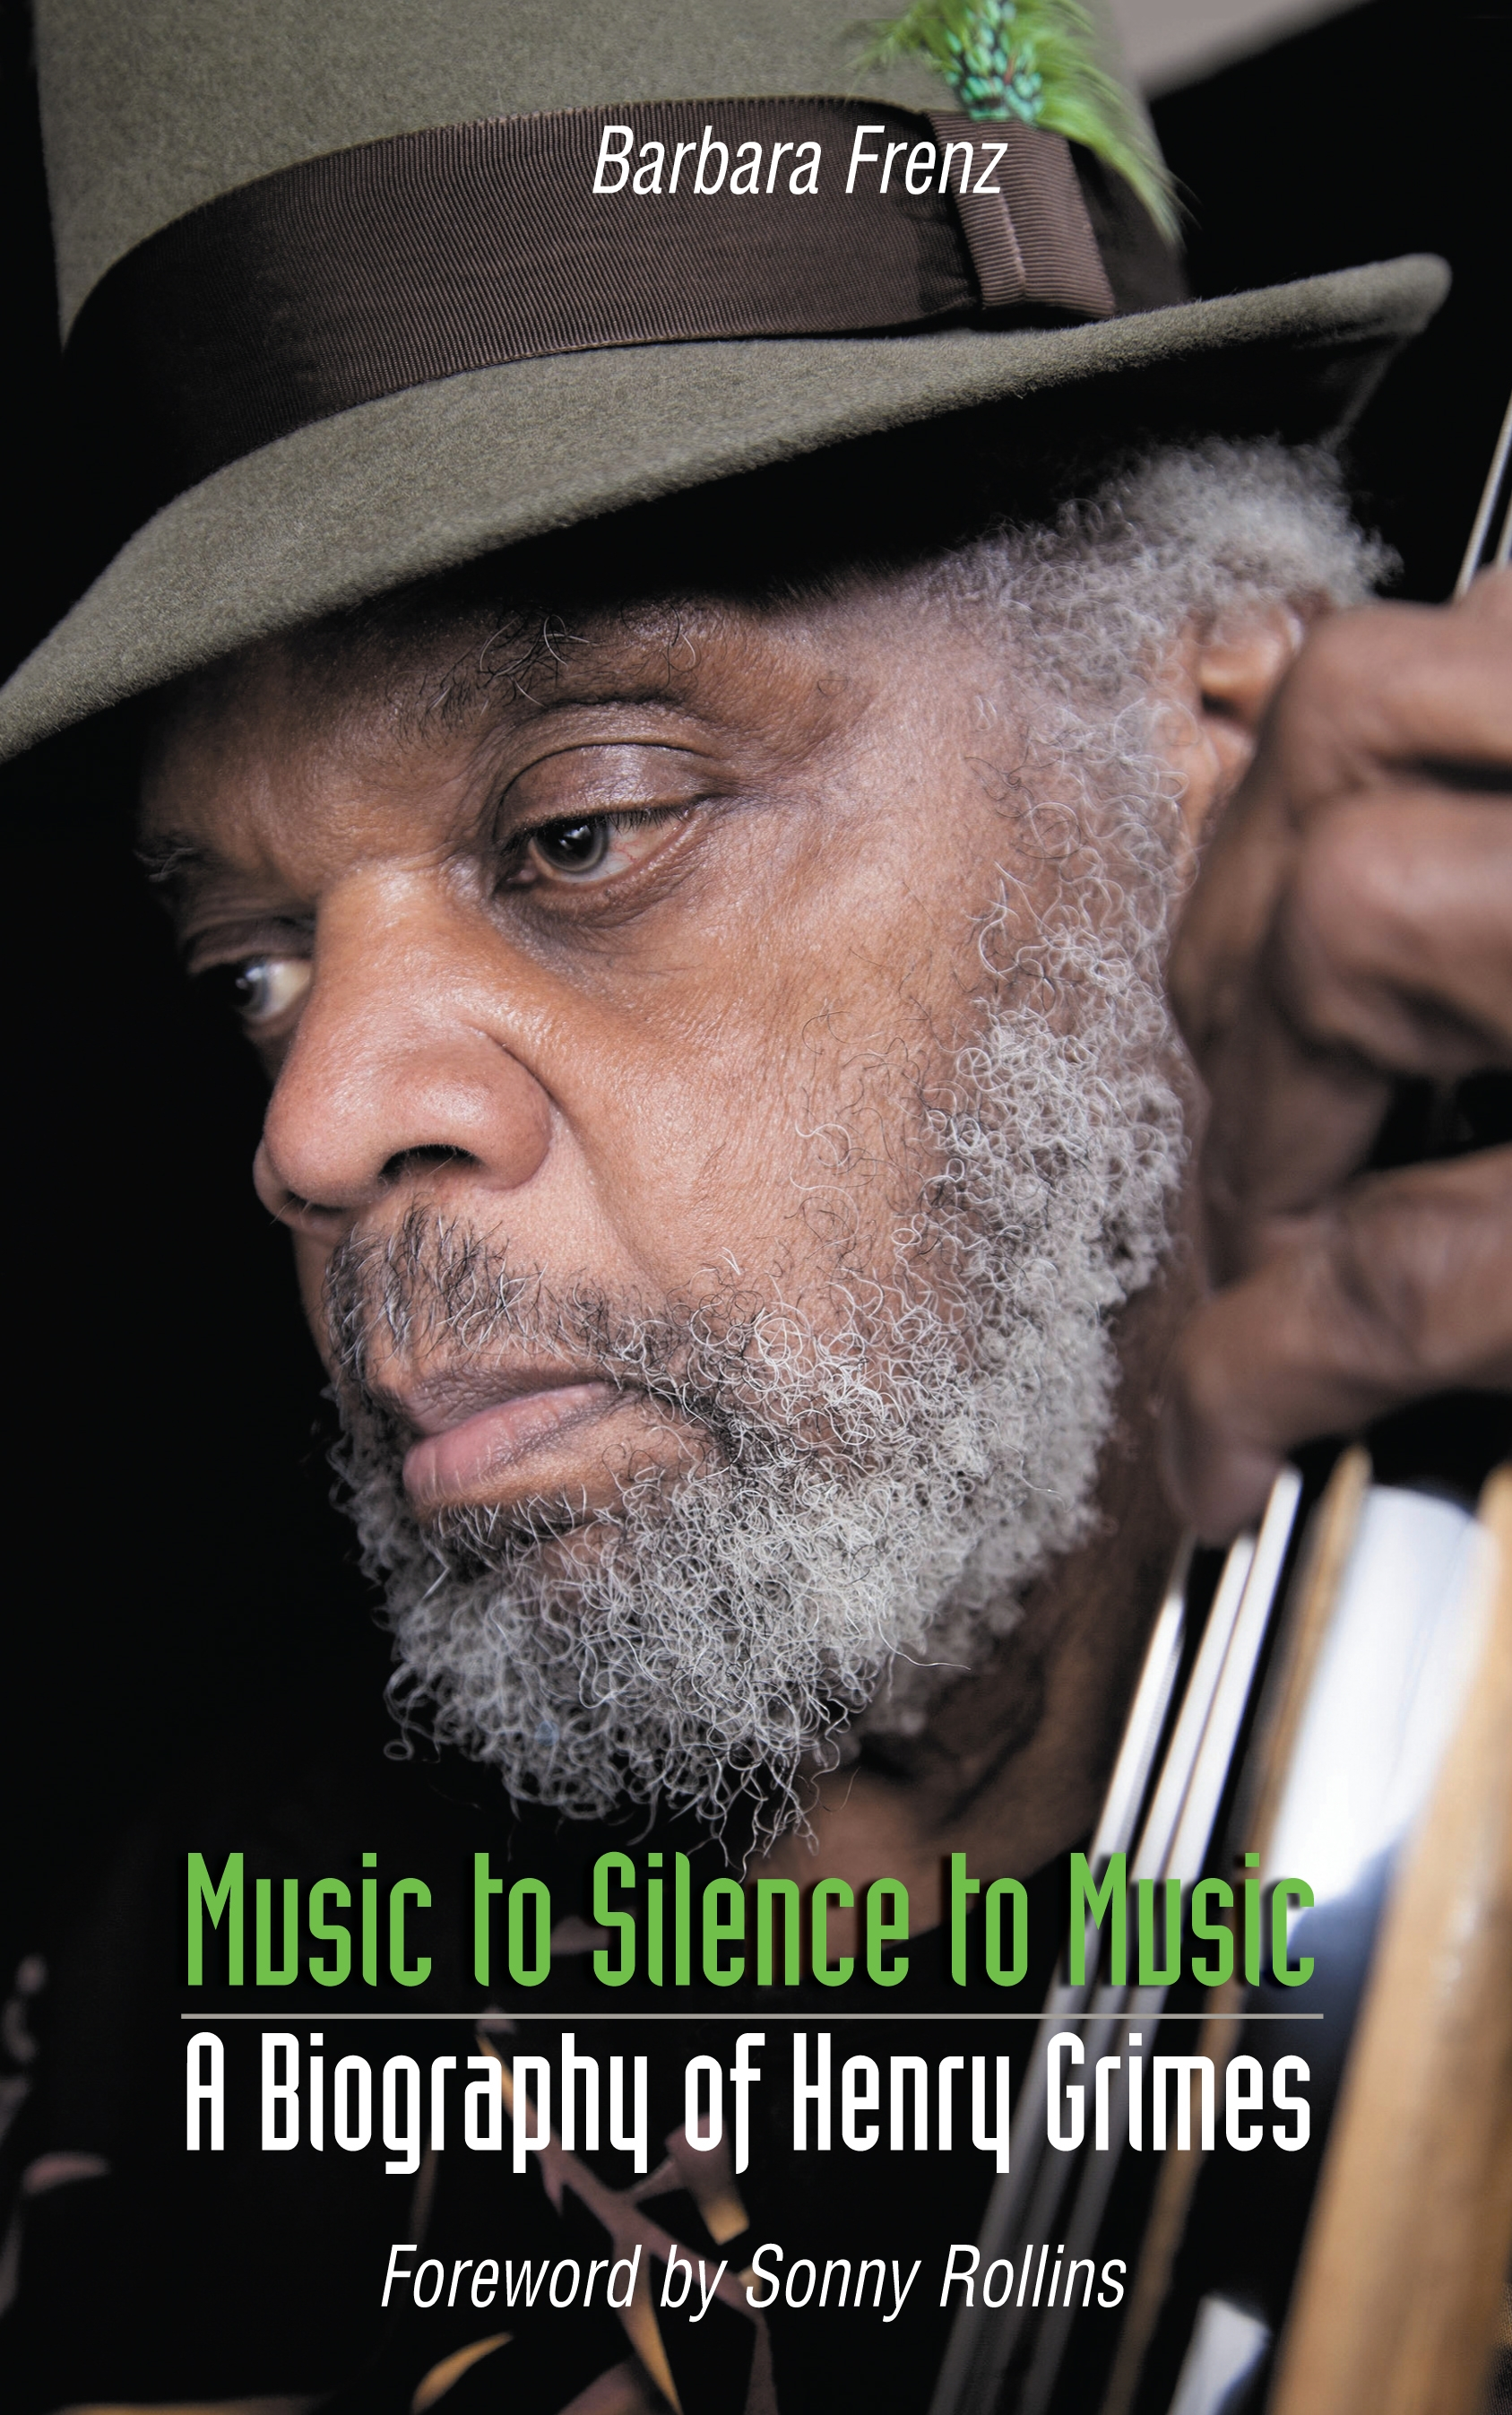 Barbara Frenz, Music to Silence to Music. A Biography of Henry Grimes. Foreword by Sonny Rollins. Northway Books London, 2015 (Cover-Foto: Hollis King, 2014)